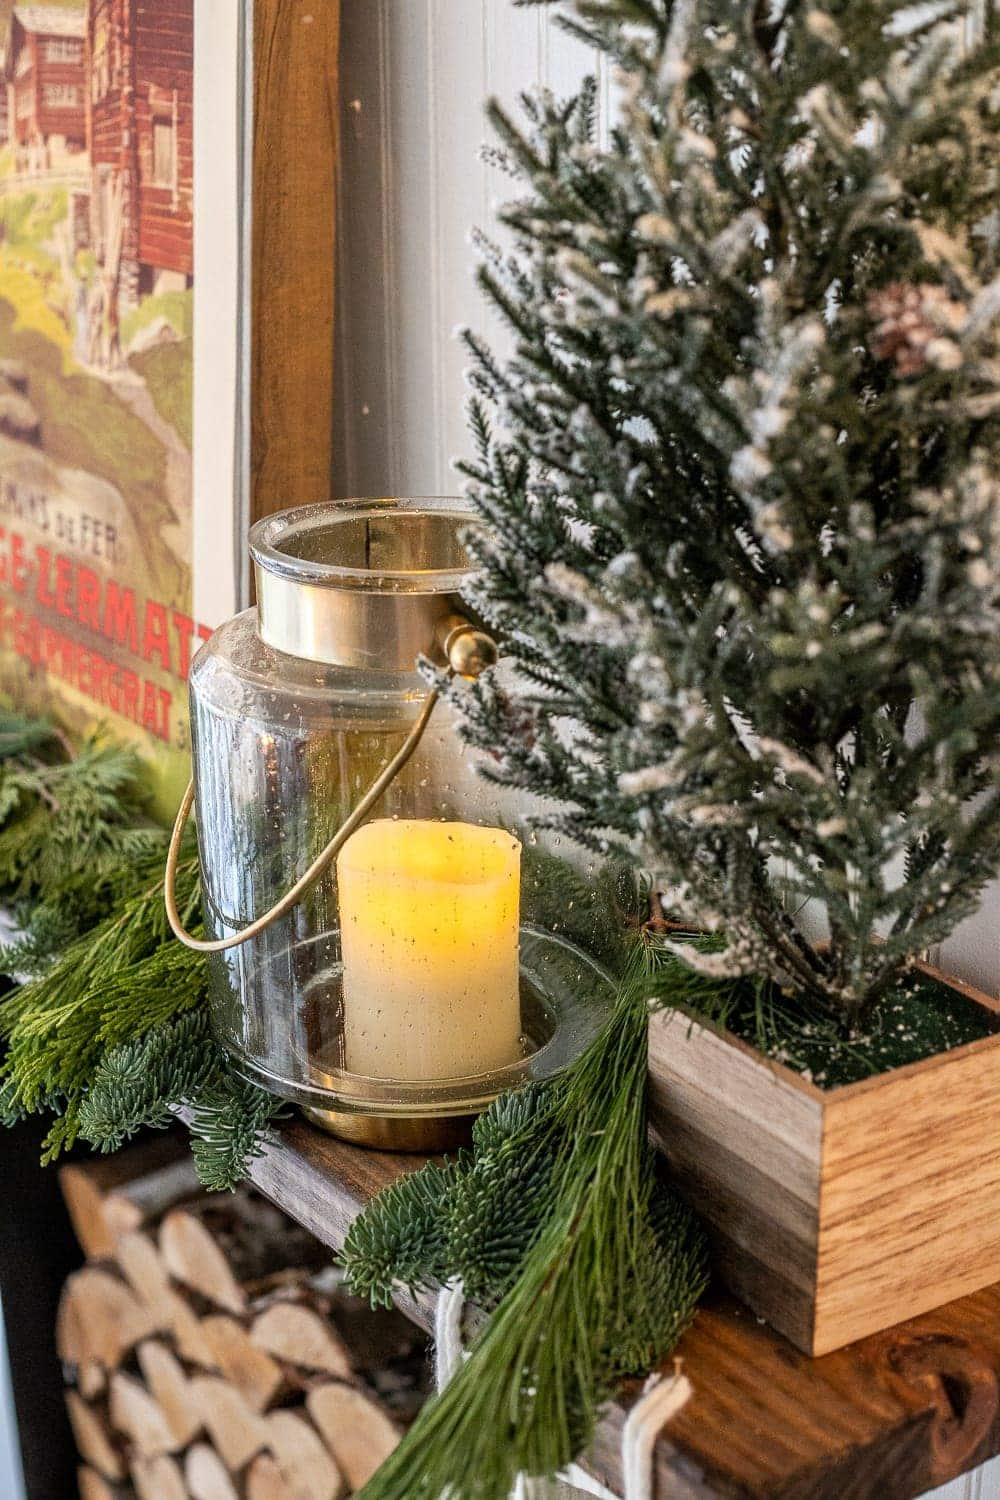 Christmas mantel decor with fresh greenery, mini trees, and glass lanterns